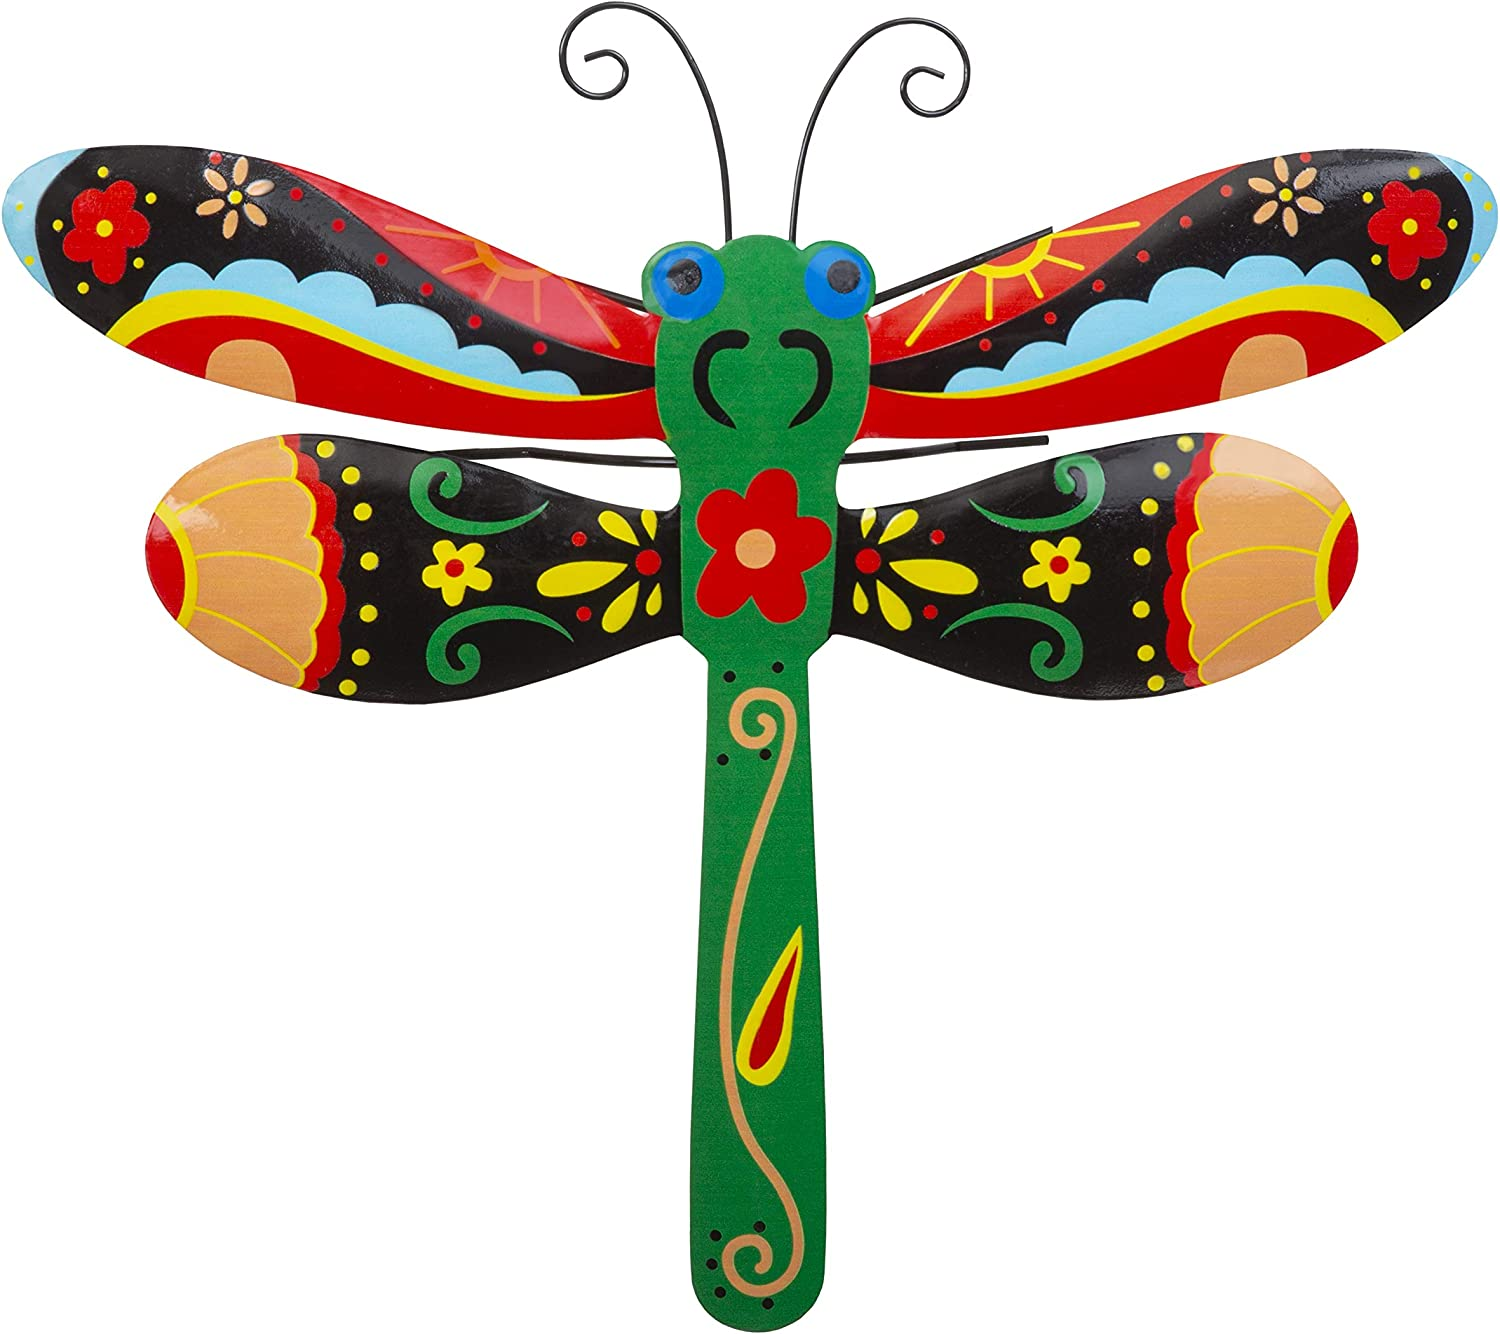 Whimsical Dragonfly Metal Wall Art | Talavera-Style Home Decor | Stylish Wall Decorations for Living Room, Kitchen, Outdoors, Office, Bedroom, Garden, Bathroom | 13x12 Inches (Dragonfly)